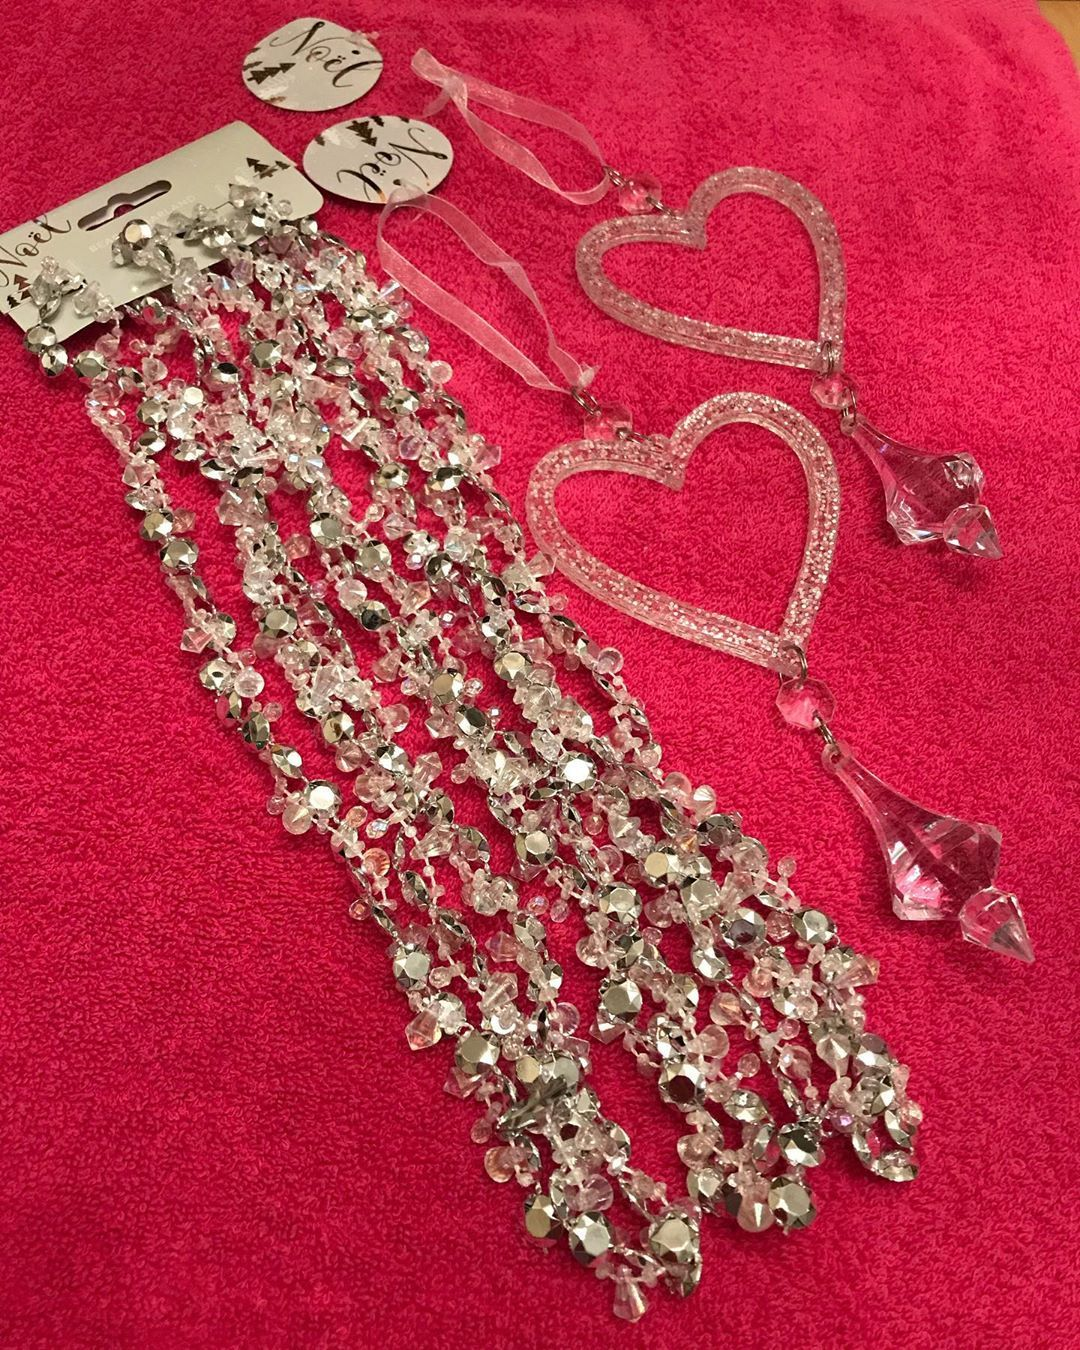 Ventured down the Crapmas aisle in @homebargains on my way home in search of sparkly craft bits 💕found some lovely silvery garland for £1.29 & glittery dangly hearts for a bargain 79p each (they also had stars) will make lovely embelishments on something I have in mind 💕💕💕#sparkly